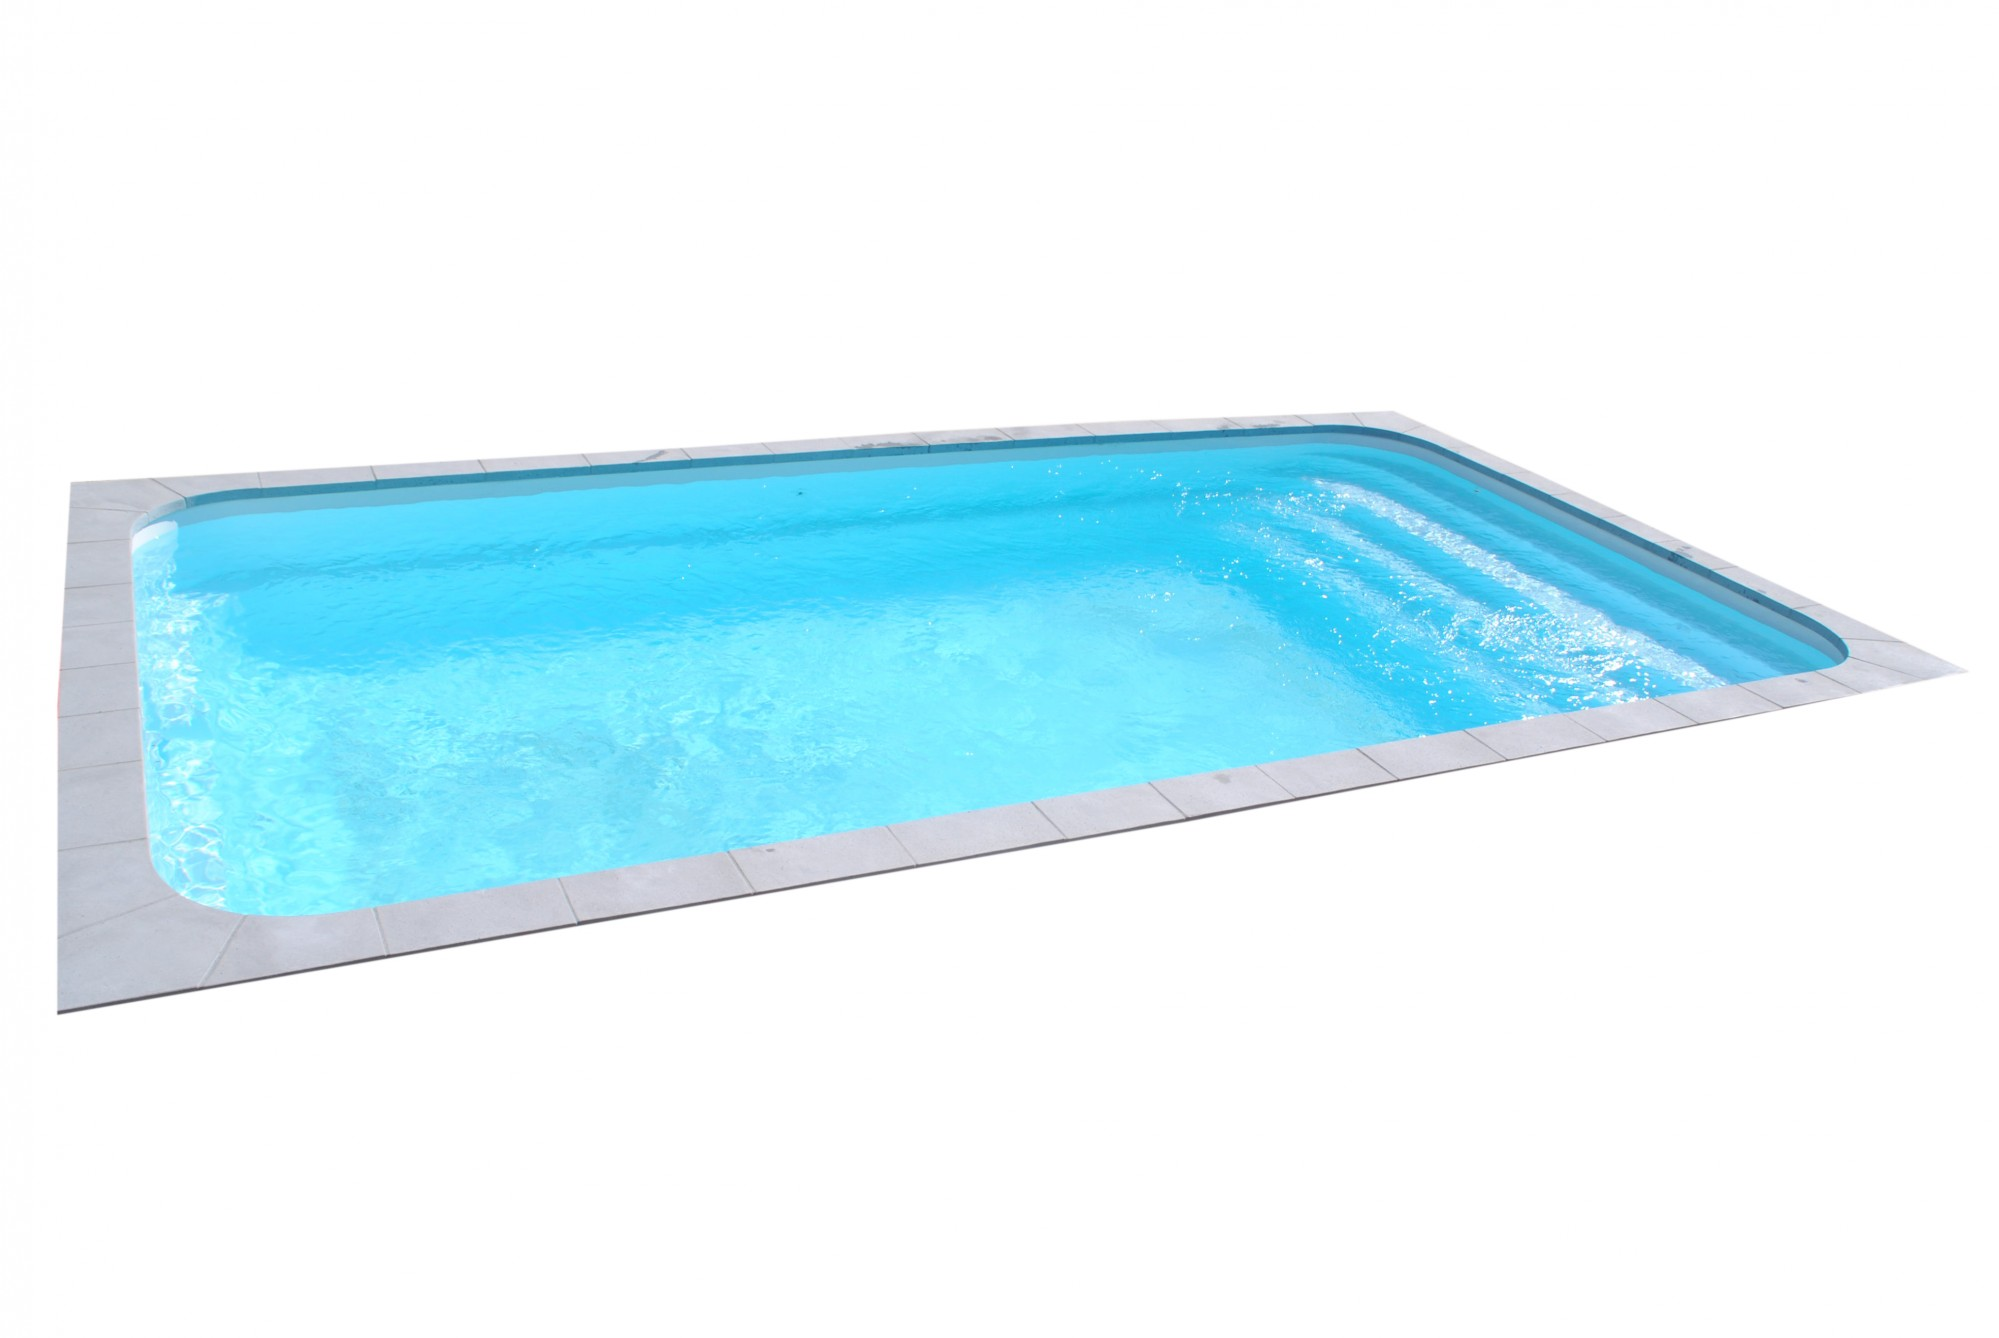 Prix d 39 une piscine coque polyester 8x4 pose comprise for Piscine coque pose comprise